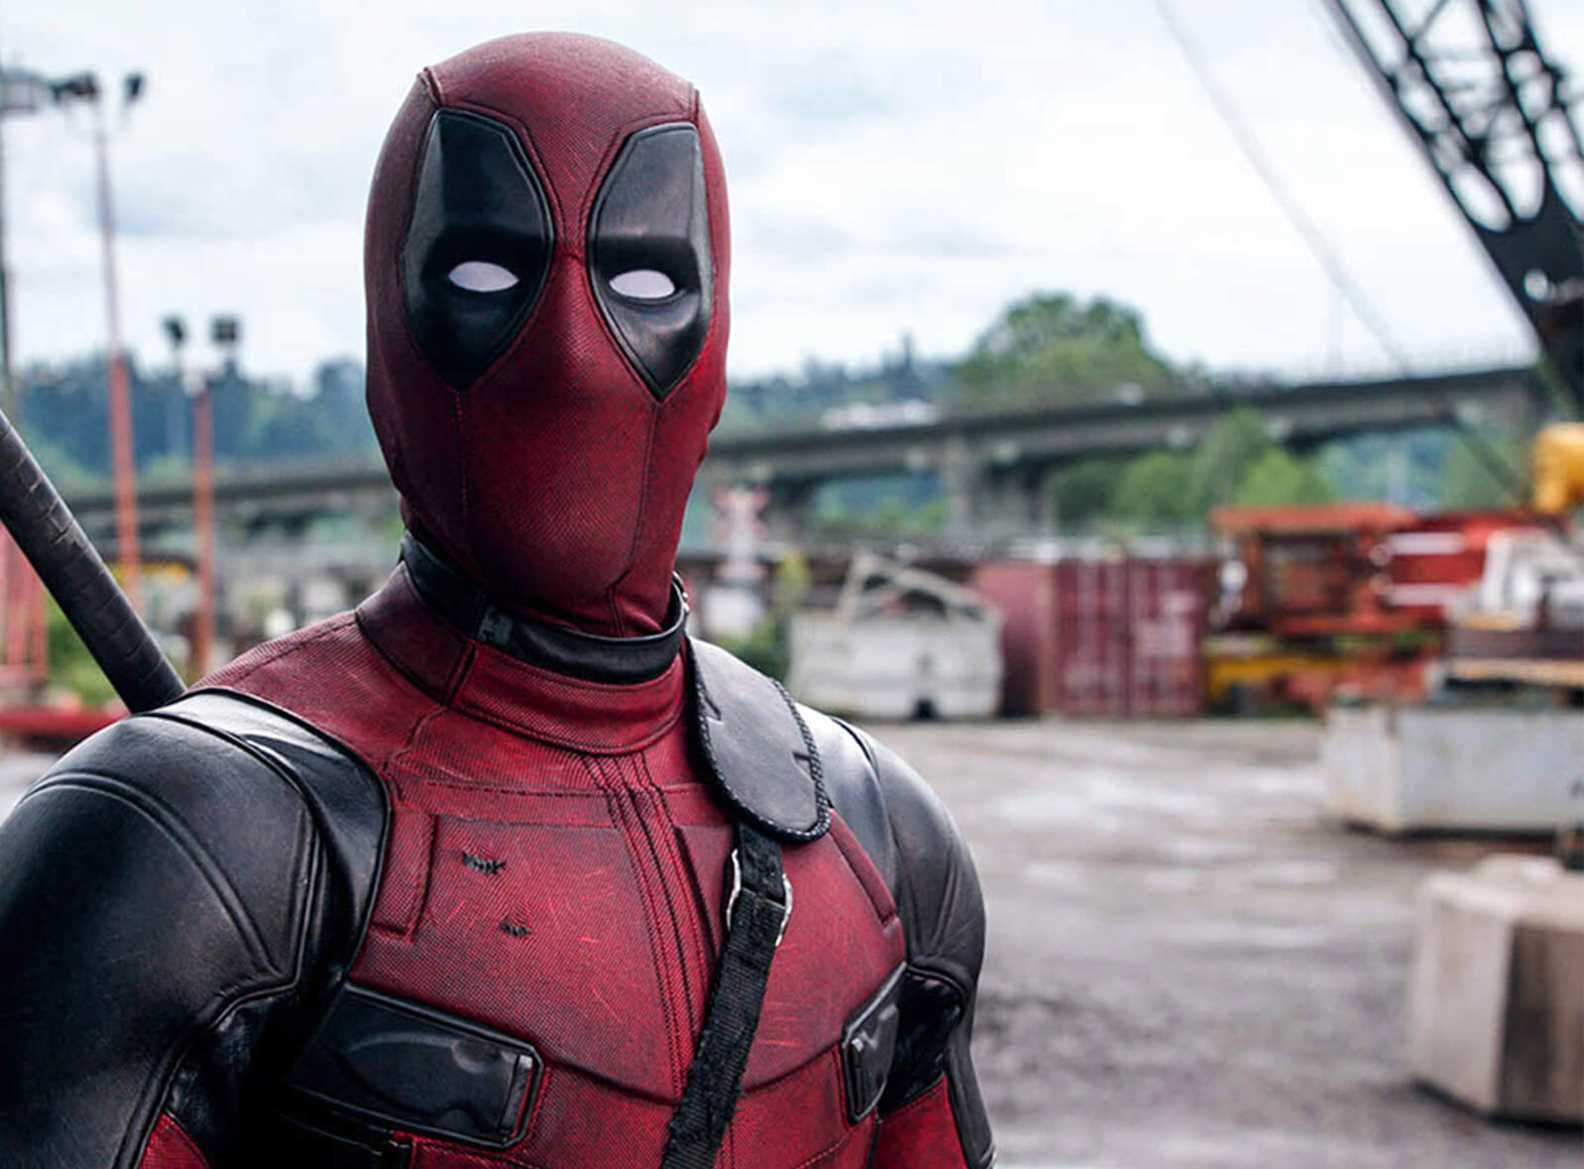 Deadpool 2 Finally Brings Queer Superheroes To The Big Screen With Same Sex Romance